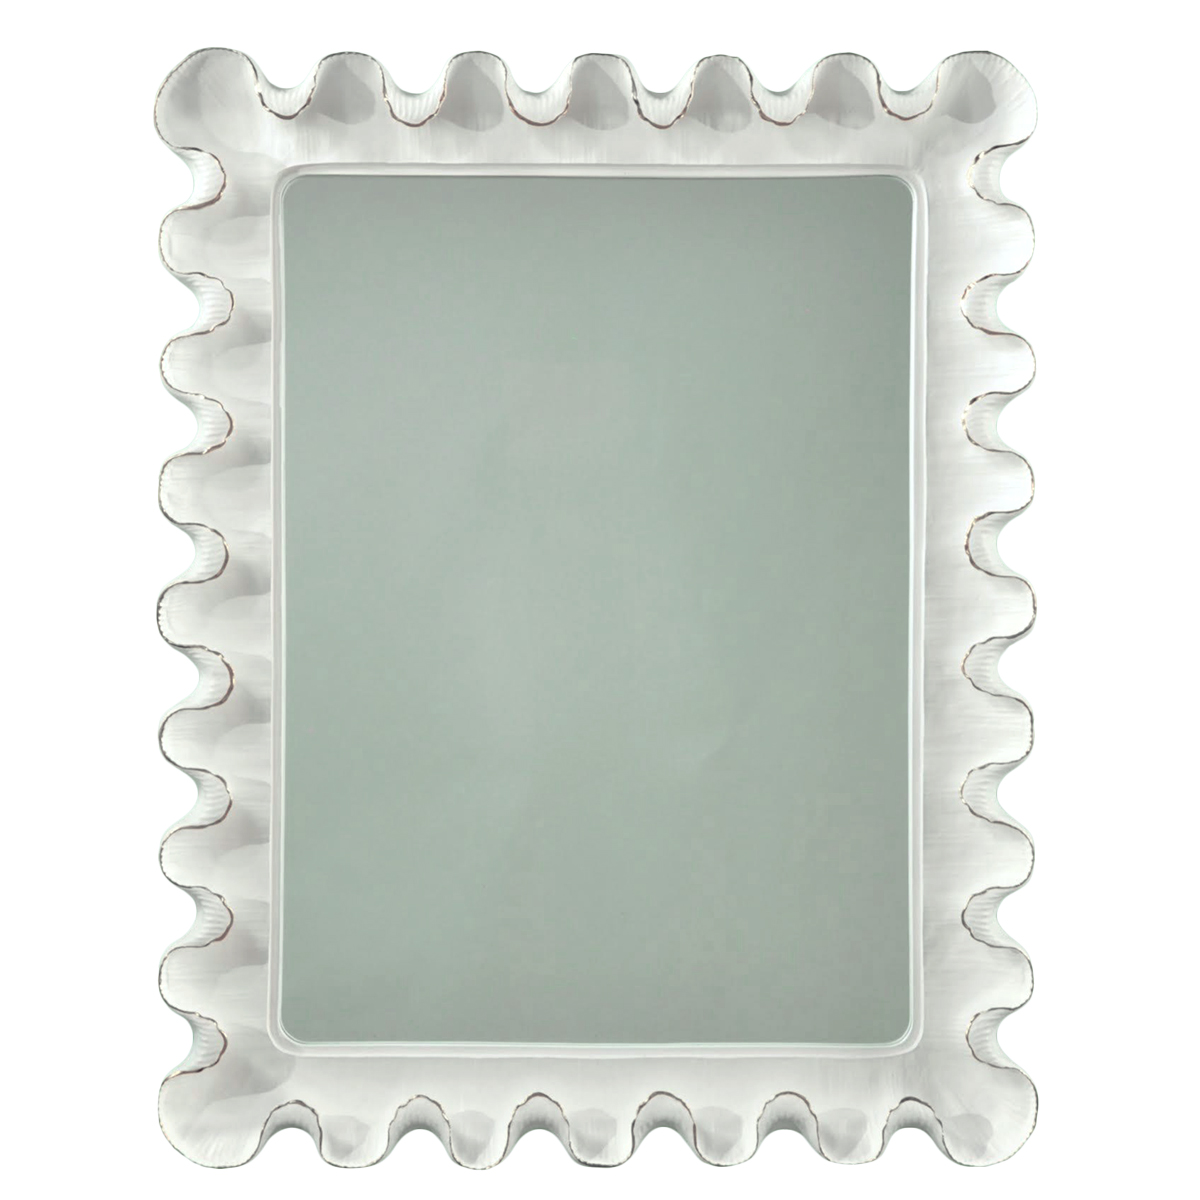 scalloped mirror.jpg